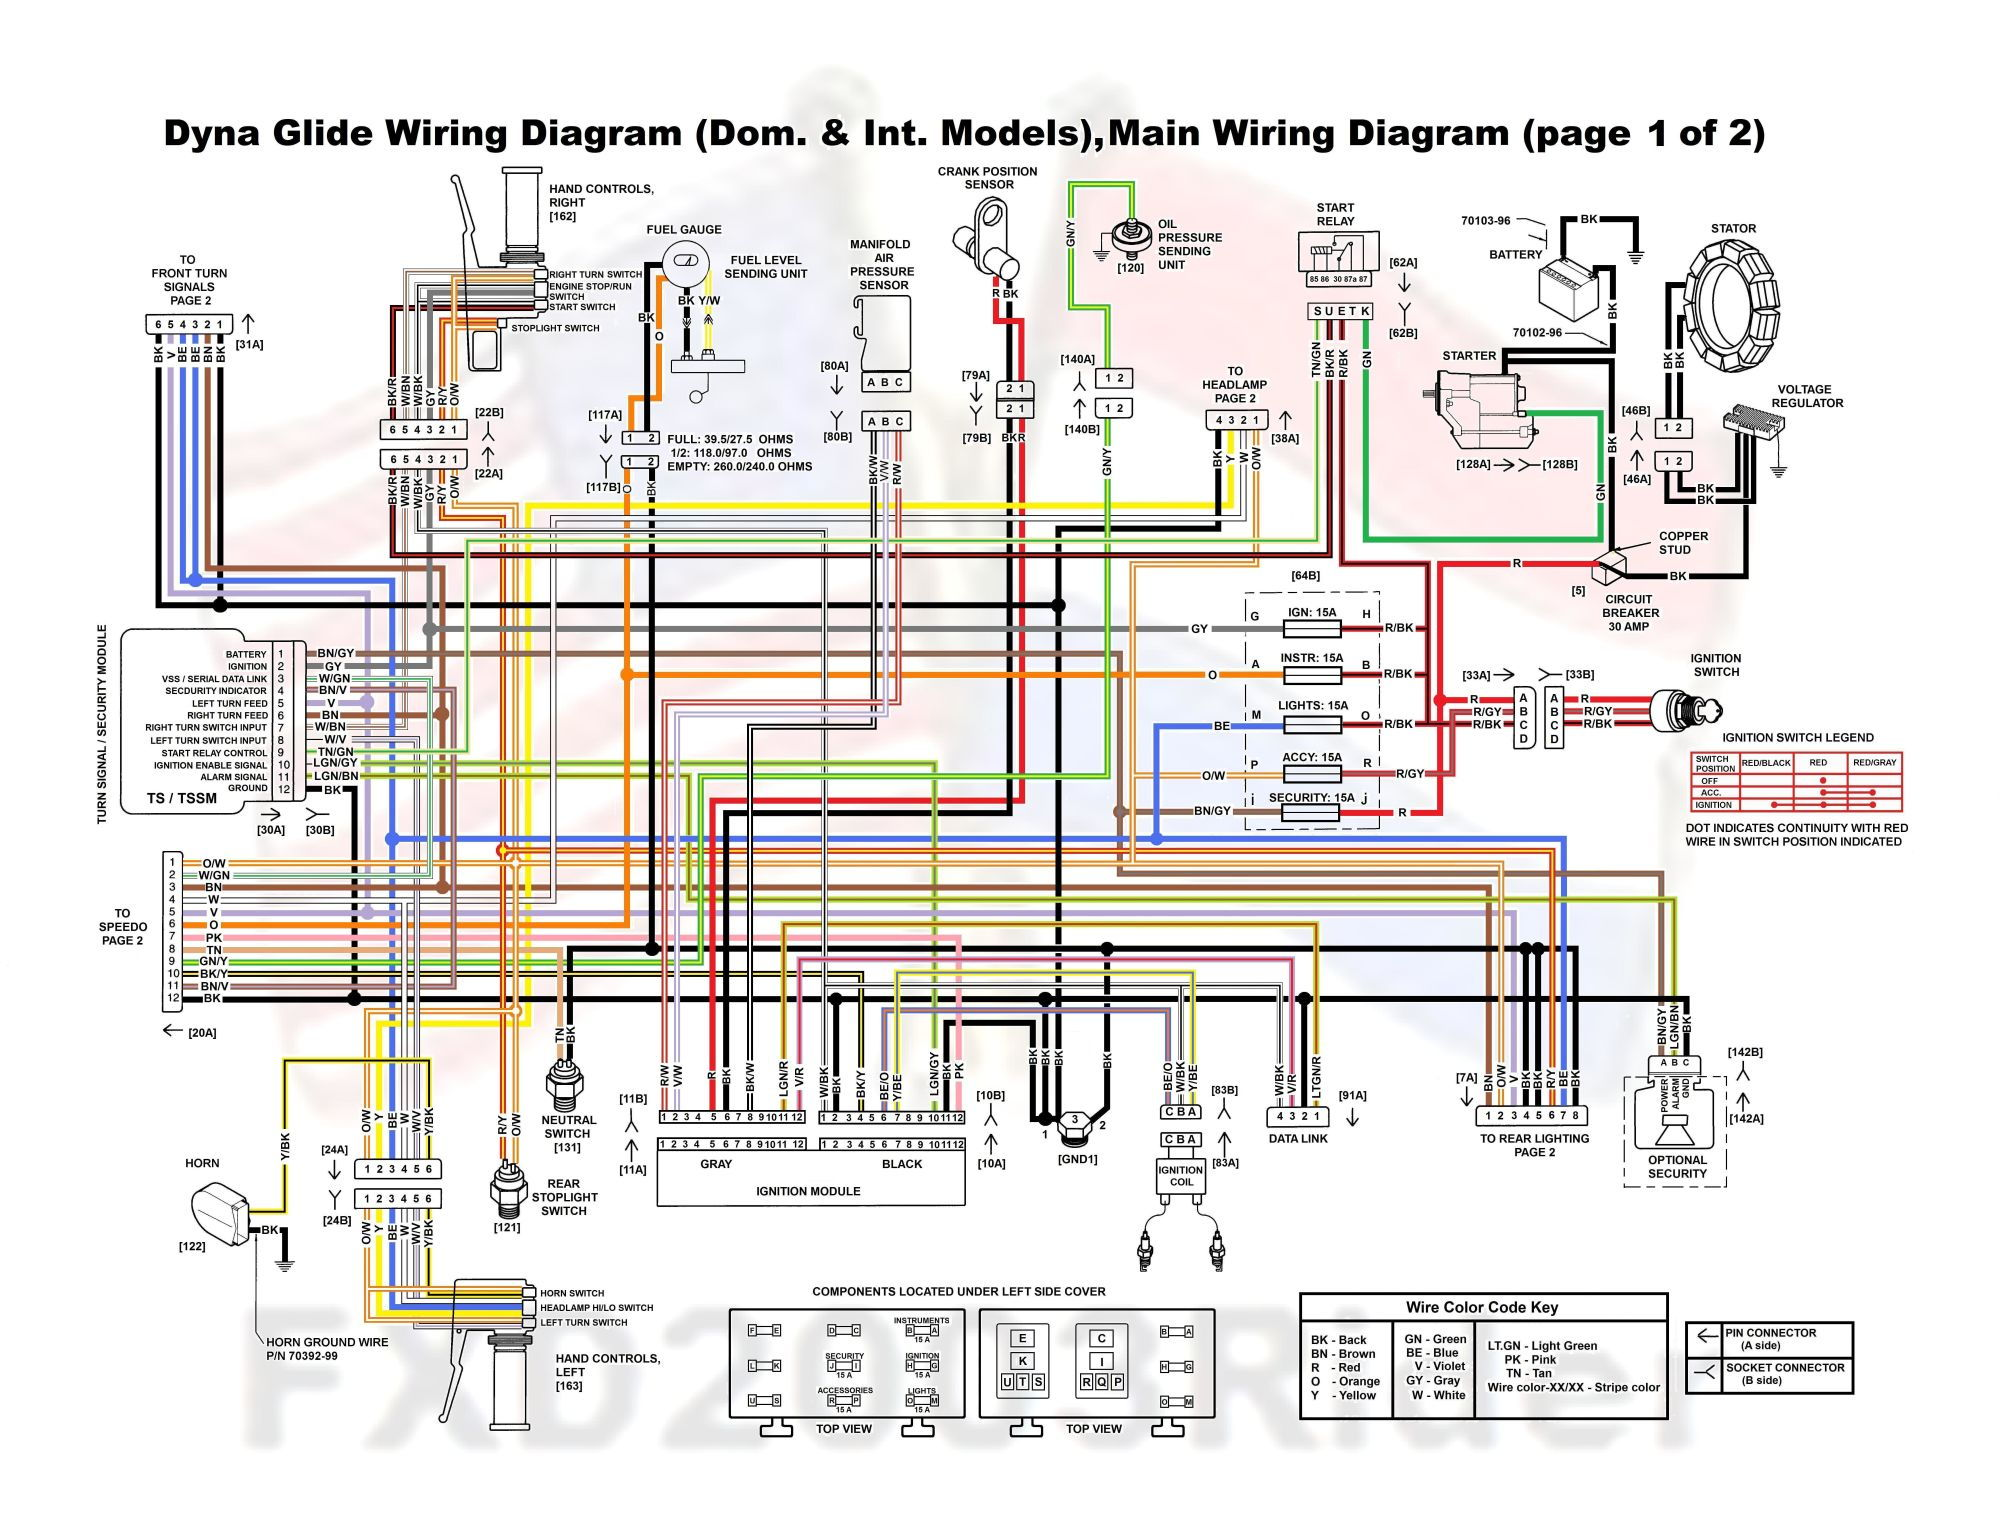 80 _kleur_en_wm_2003_dyna_glide_wiring_diagram_dom_int_models_main_wiring_diagram_page_1_of_2_89aa5bfbfe3bdf104c1e84165cbae702feebd8cc_970b11171da5e76f156265415c7fb81c65f2e08a need wiring help harley davidson forums FLHX Wiring Fuse Block at eliteediting.co